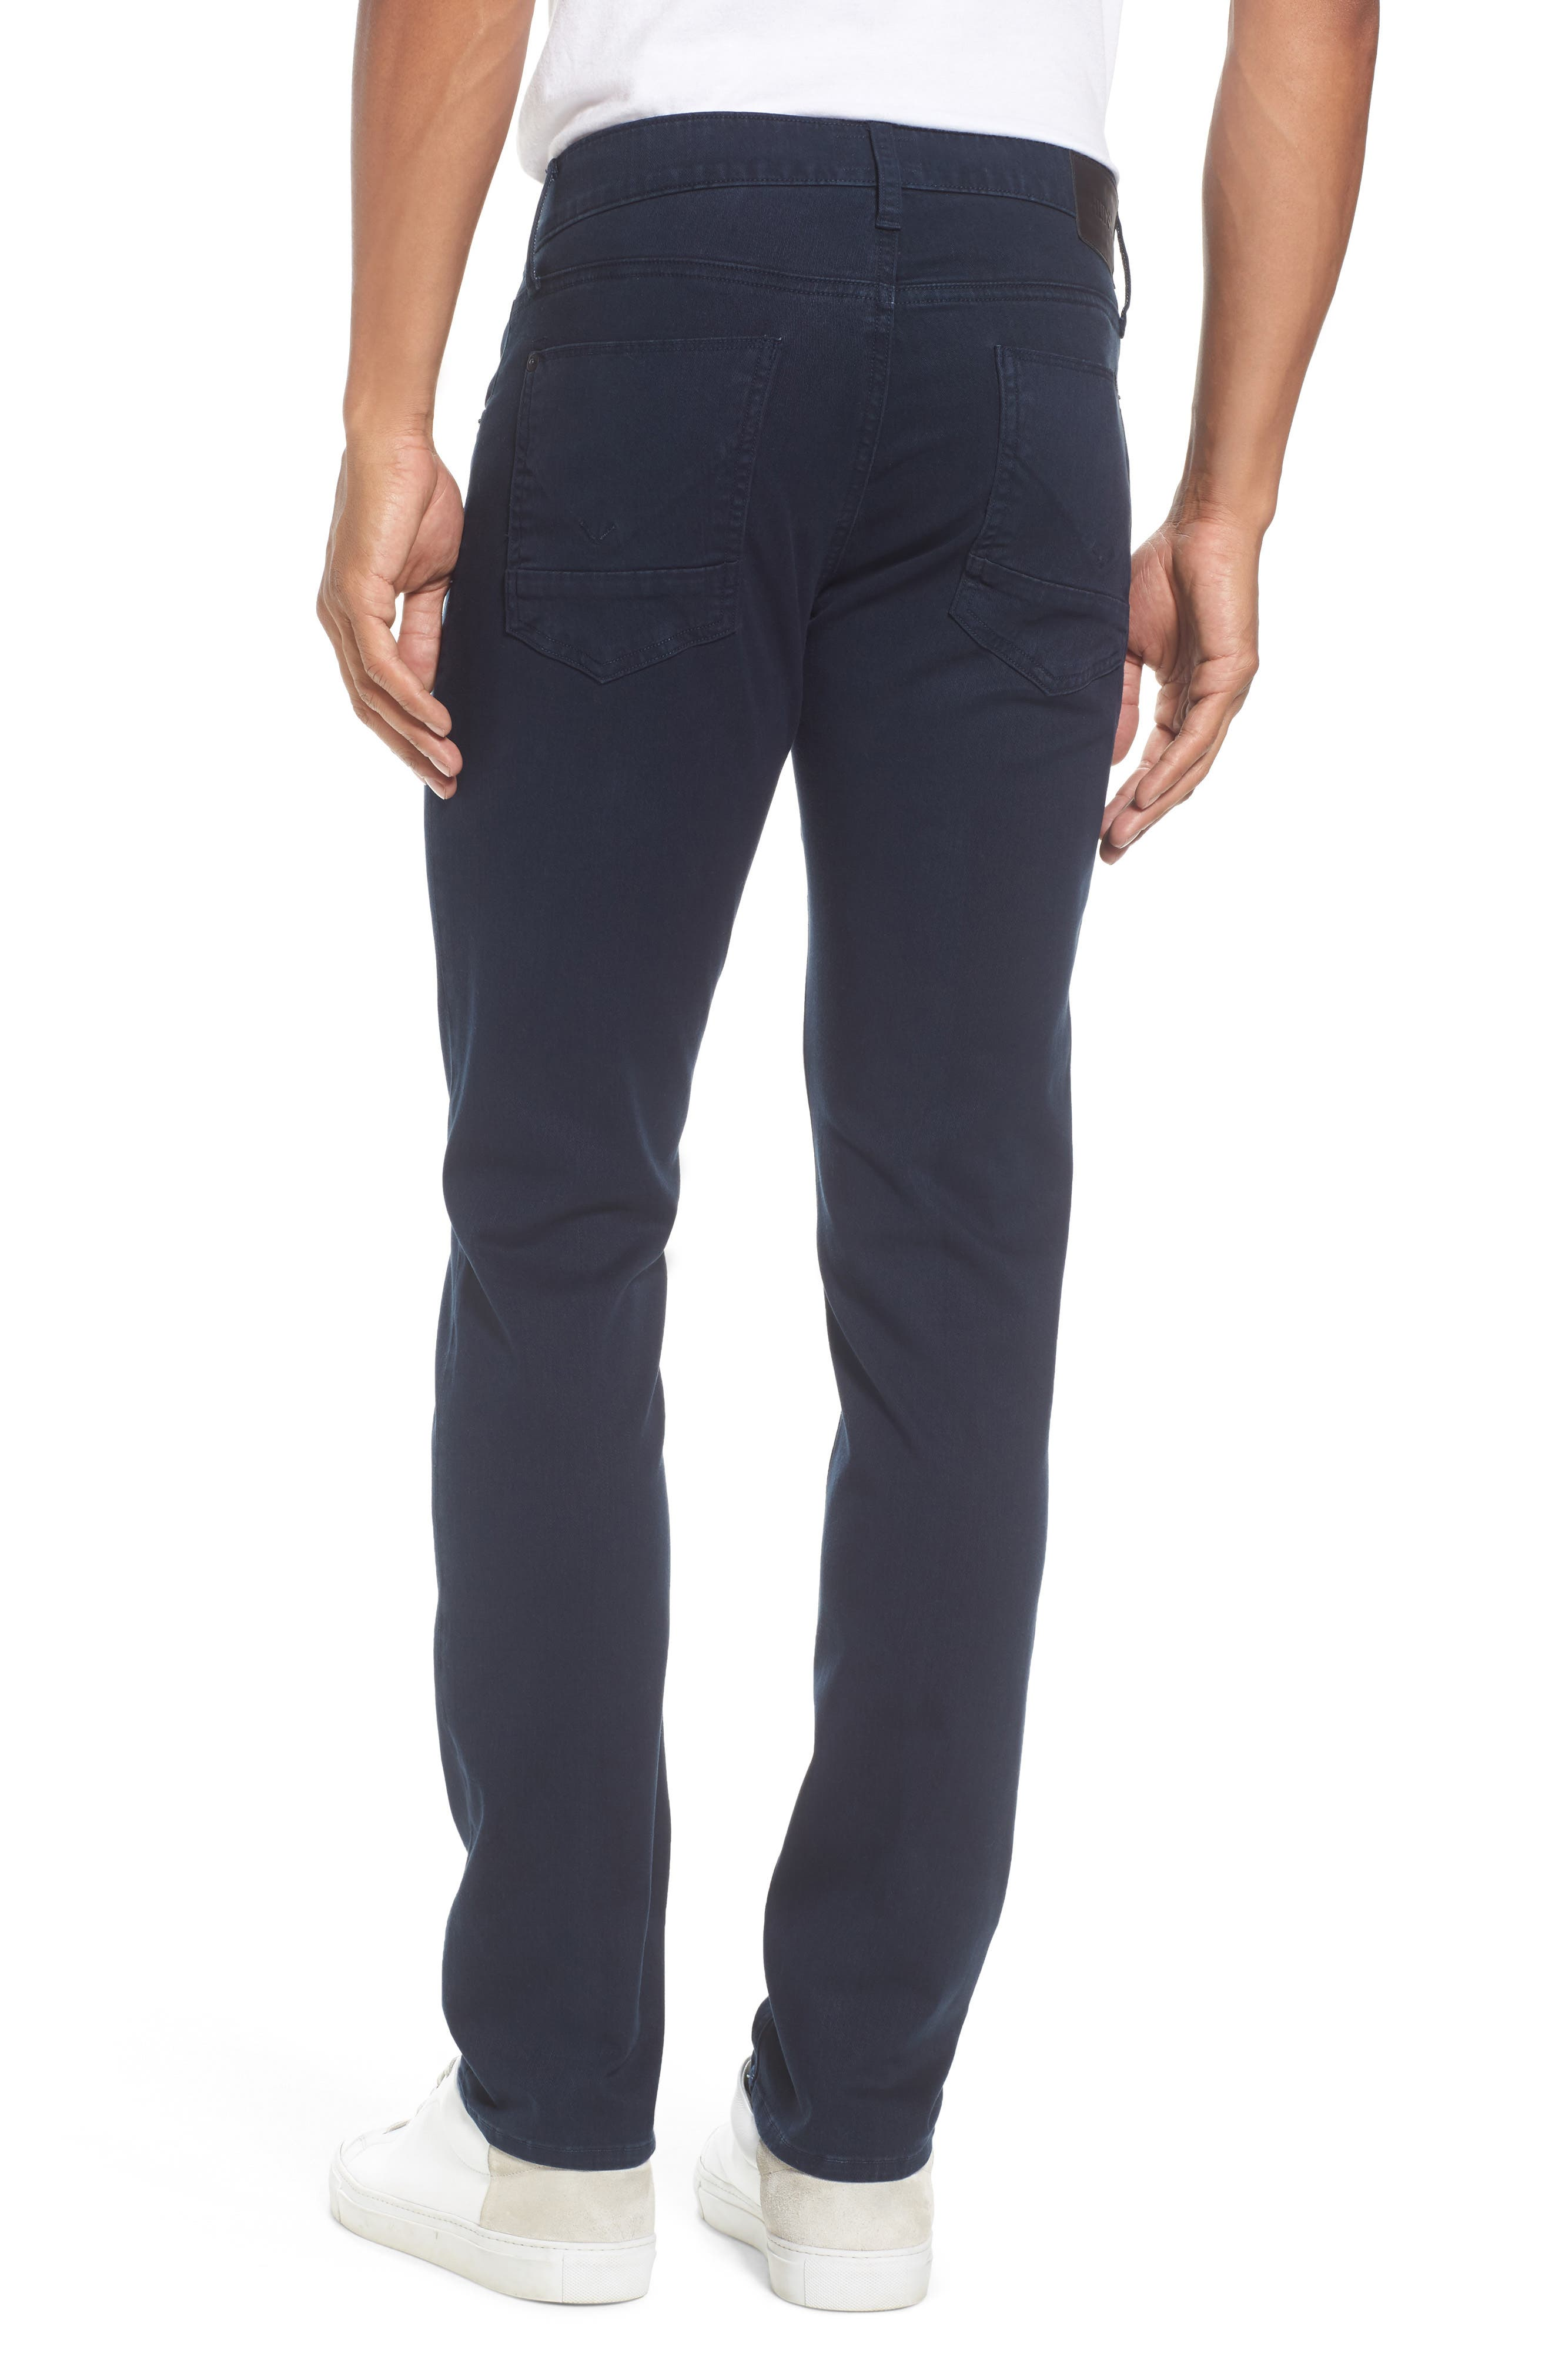 Blake Slim Fit Jeans,                             Alternate thumbnail 2, color,                             Polar